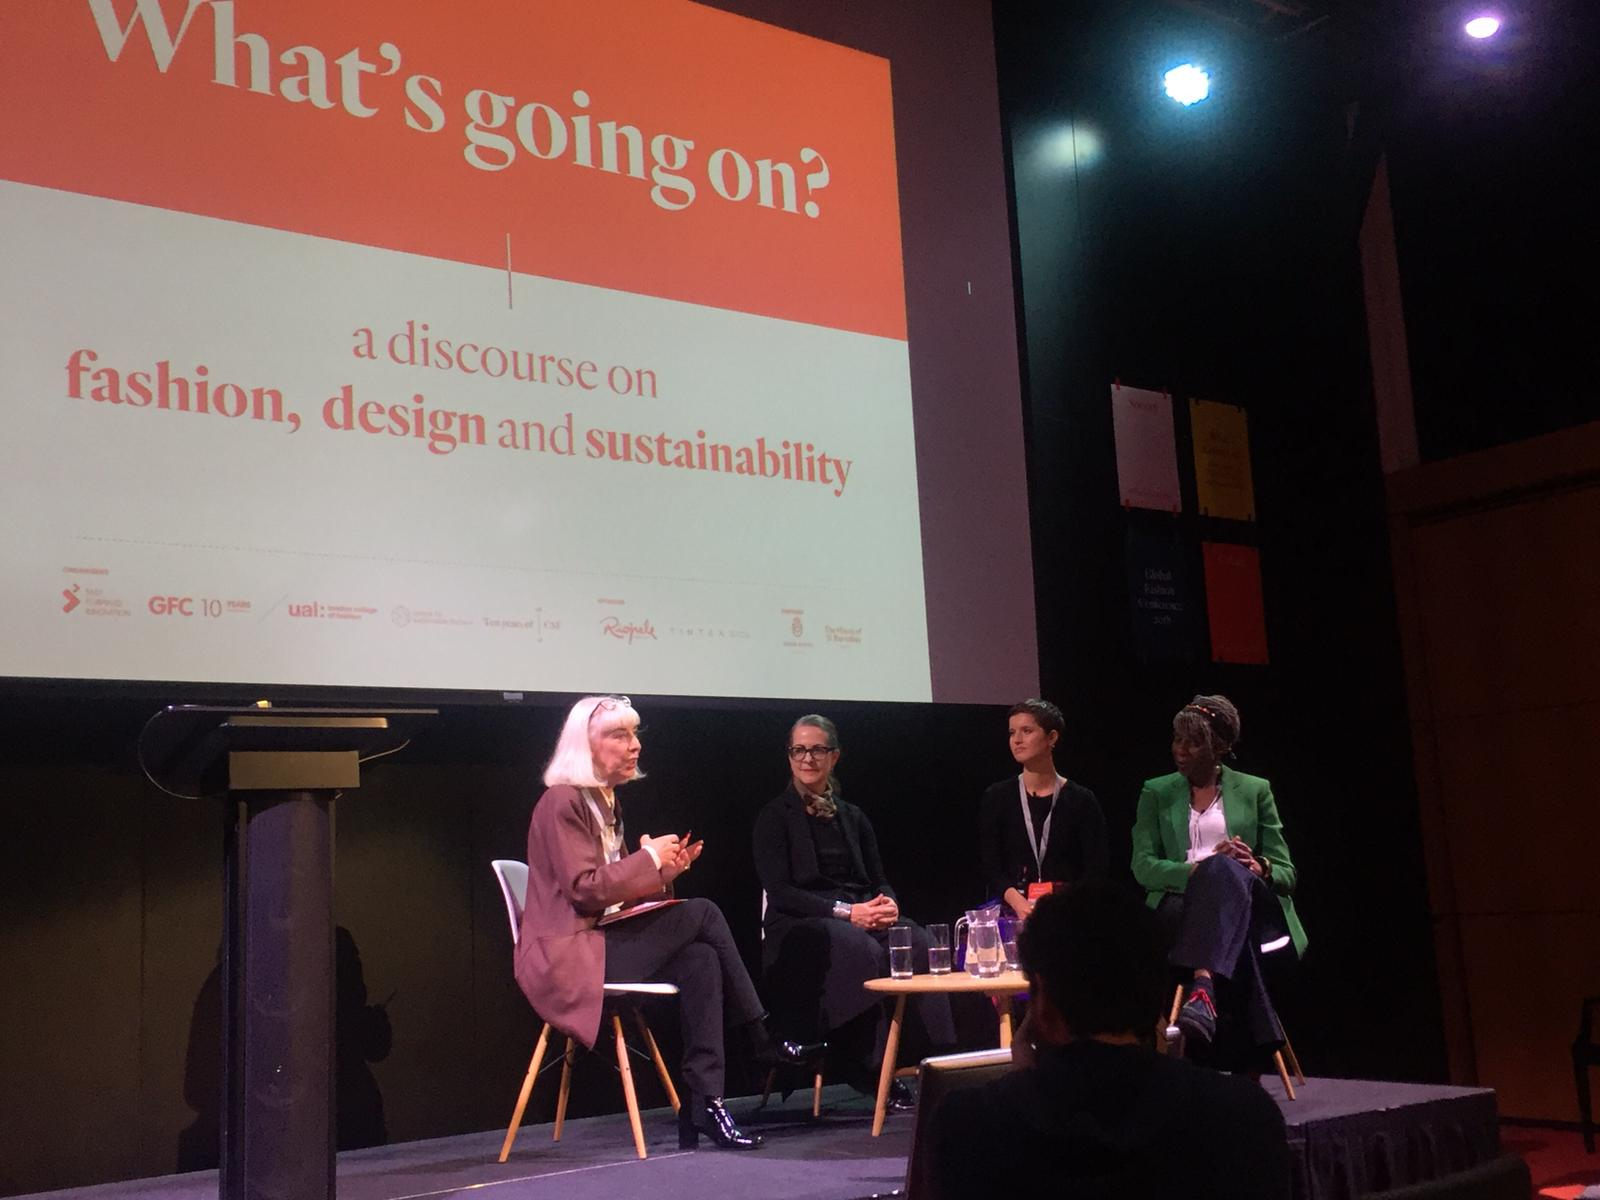 Sharing my perspective on the closing conference panel, alongside Angela McRobbie, Frances Corner and Baroness Lola Young.